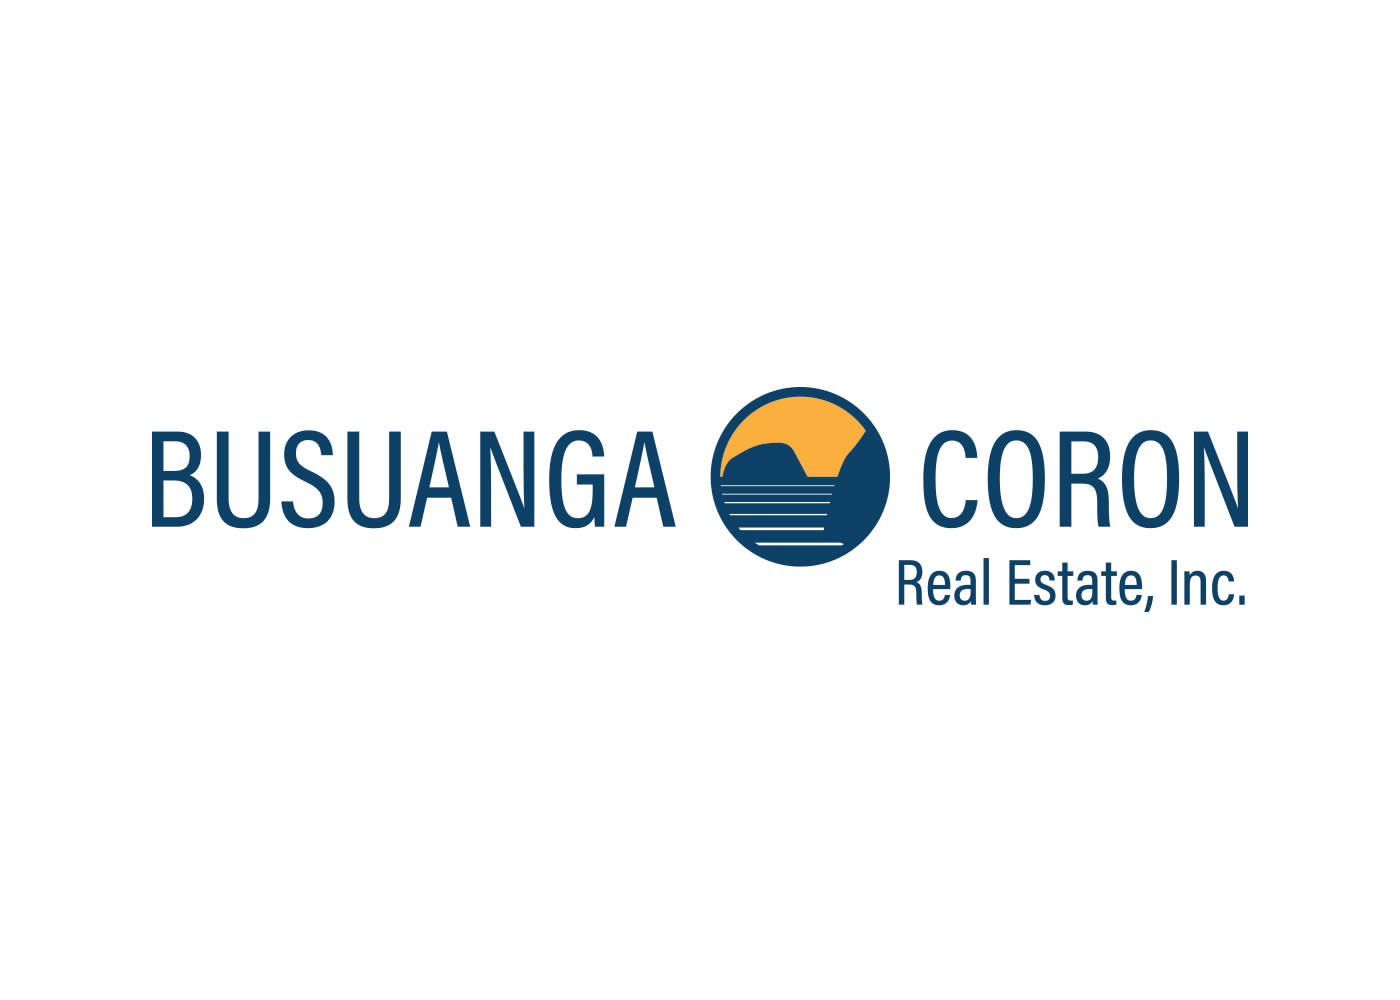 Busuanga Coron Real Estate